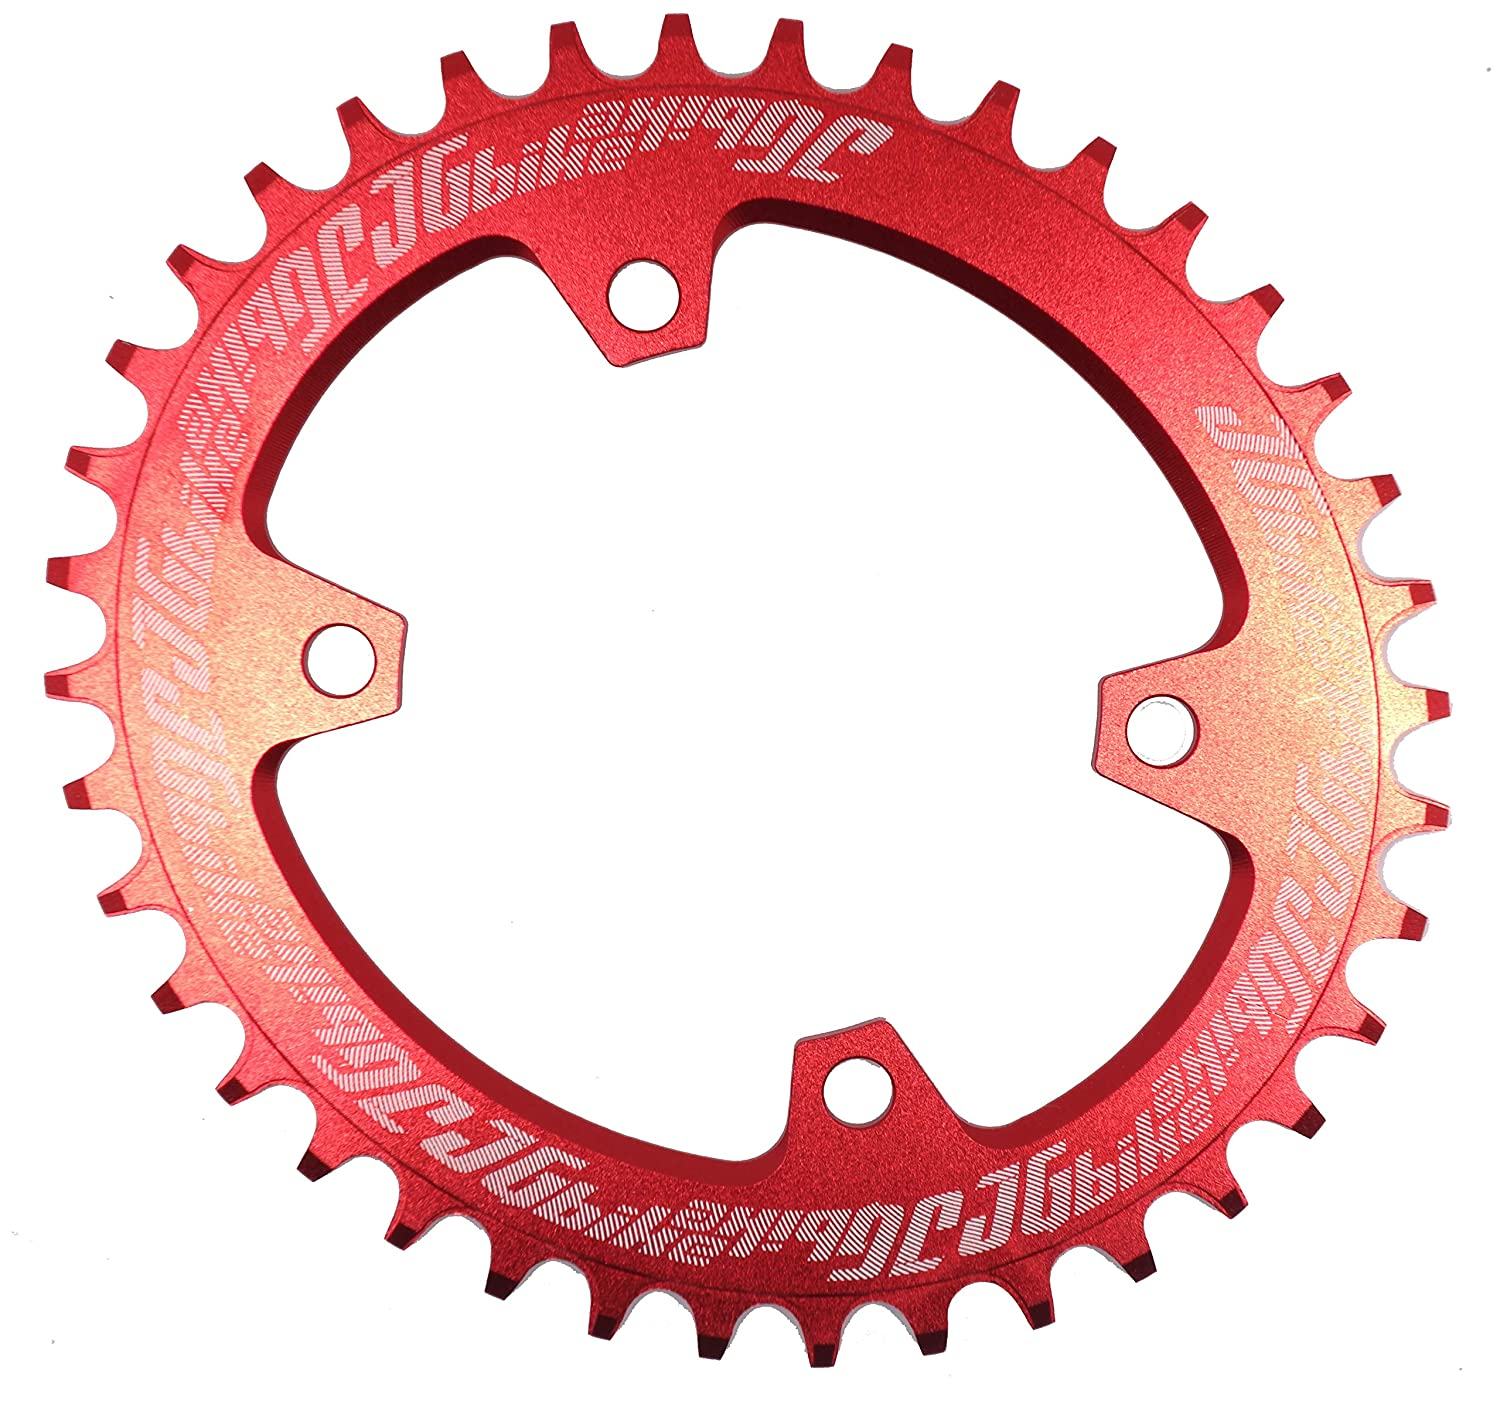 JGbike Elite Round Oval 96mm BCD 32T 34T 36T 38T Chainring for MTB Mountain Bike Bicycle for Shimano SLX XT XTR M6000 M7000 M8000 M9000 ONLY